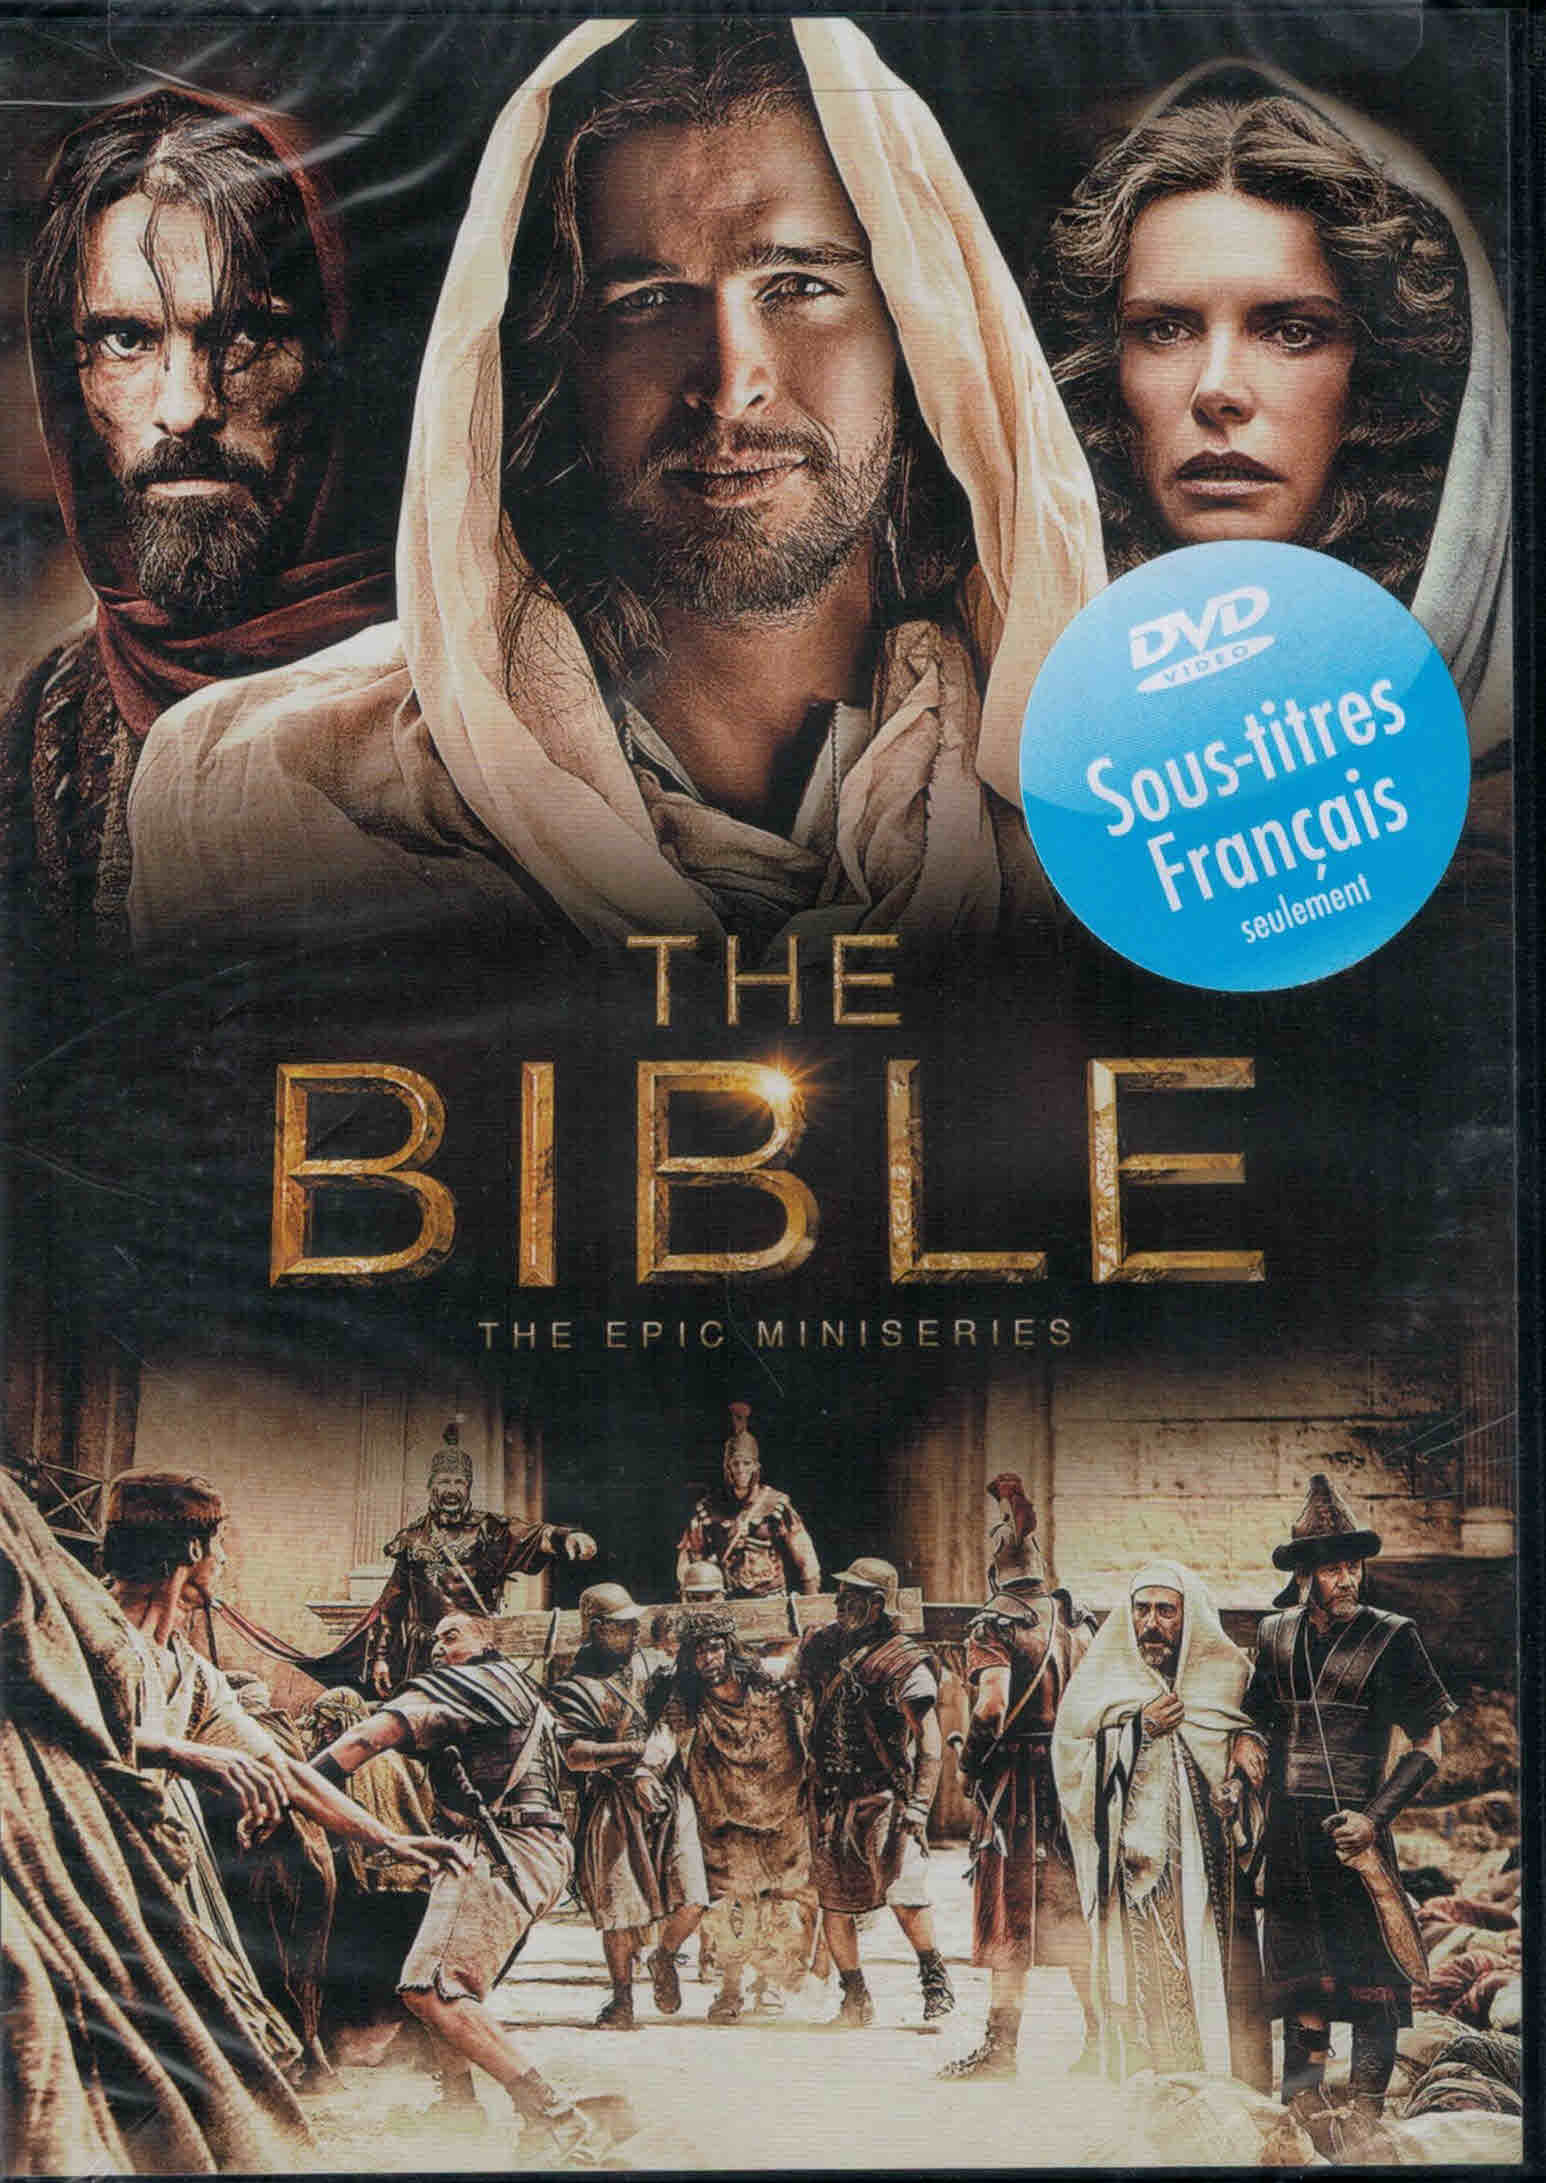 DVD The Bible - The Epic Miniseries